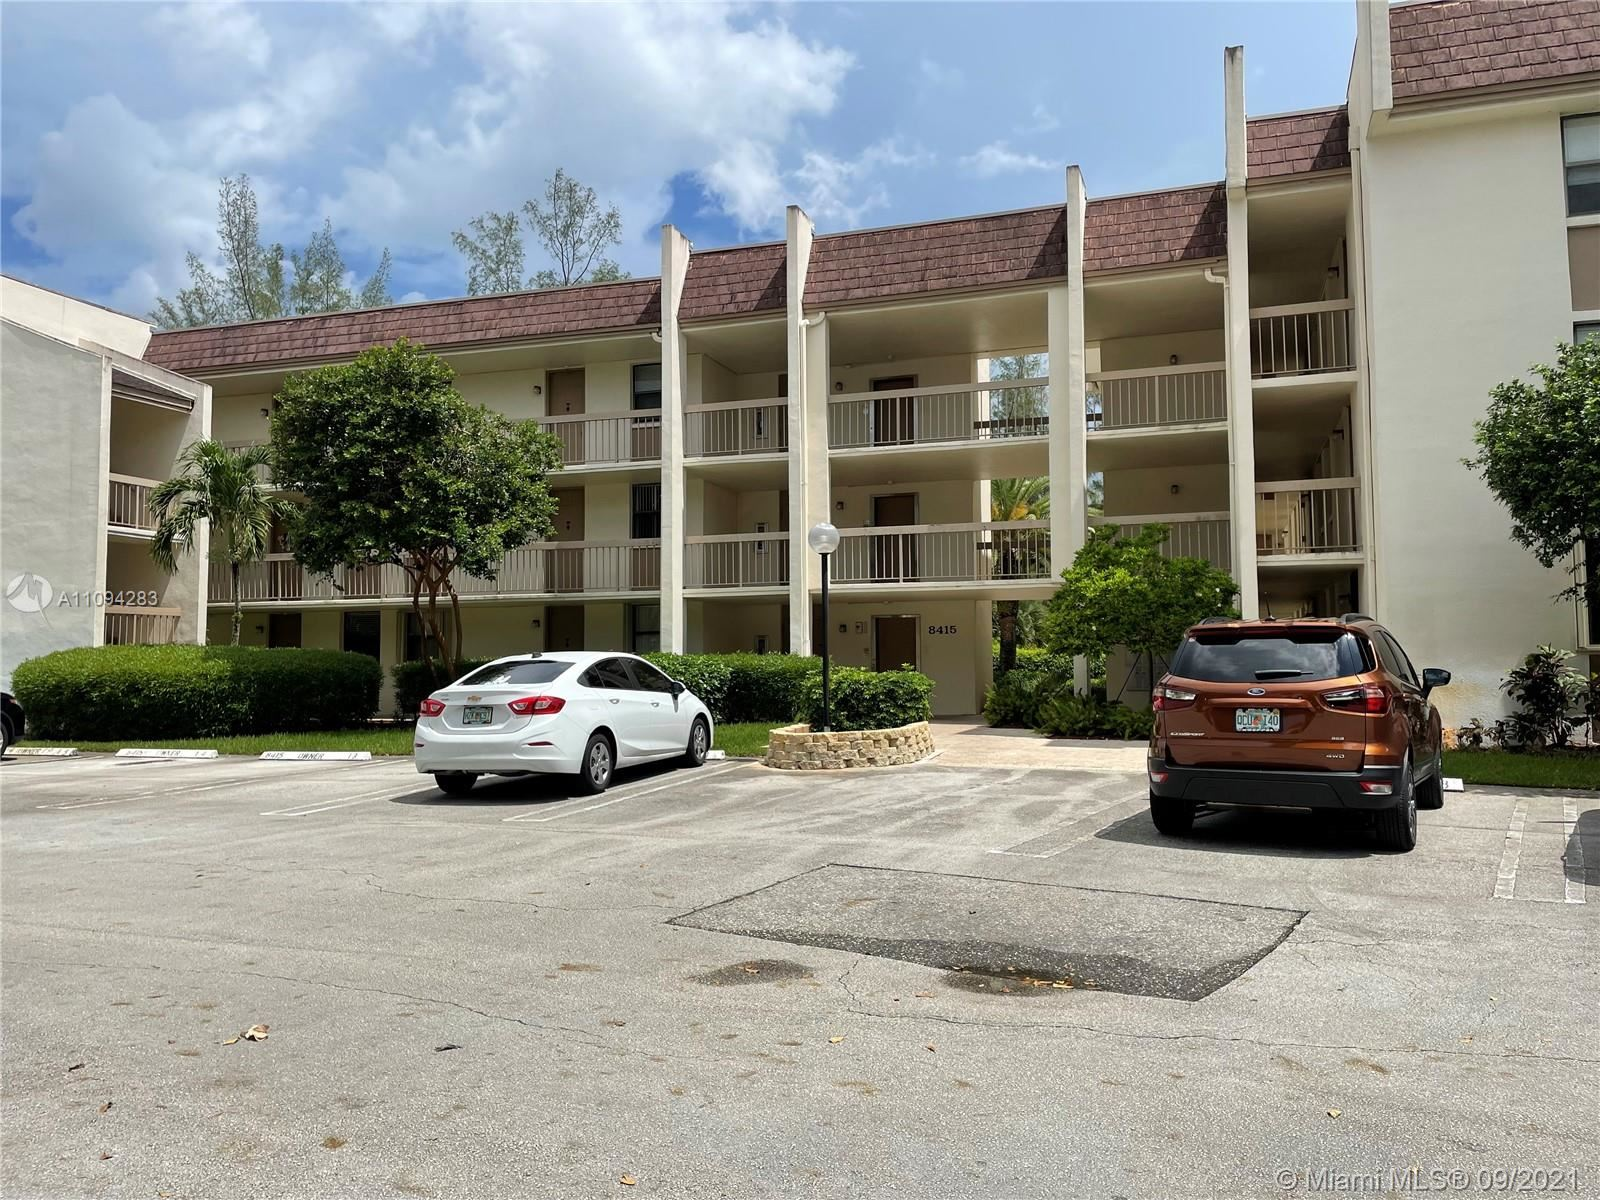 8415 Forest Hills Dr #307, Coral Springs, FL 33065 - #: A11094283